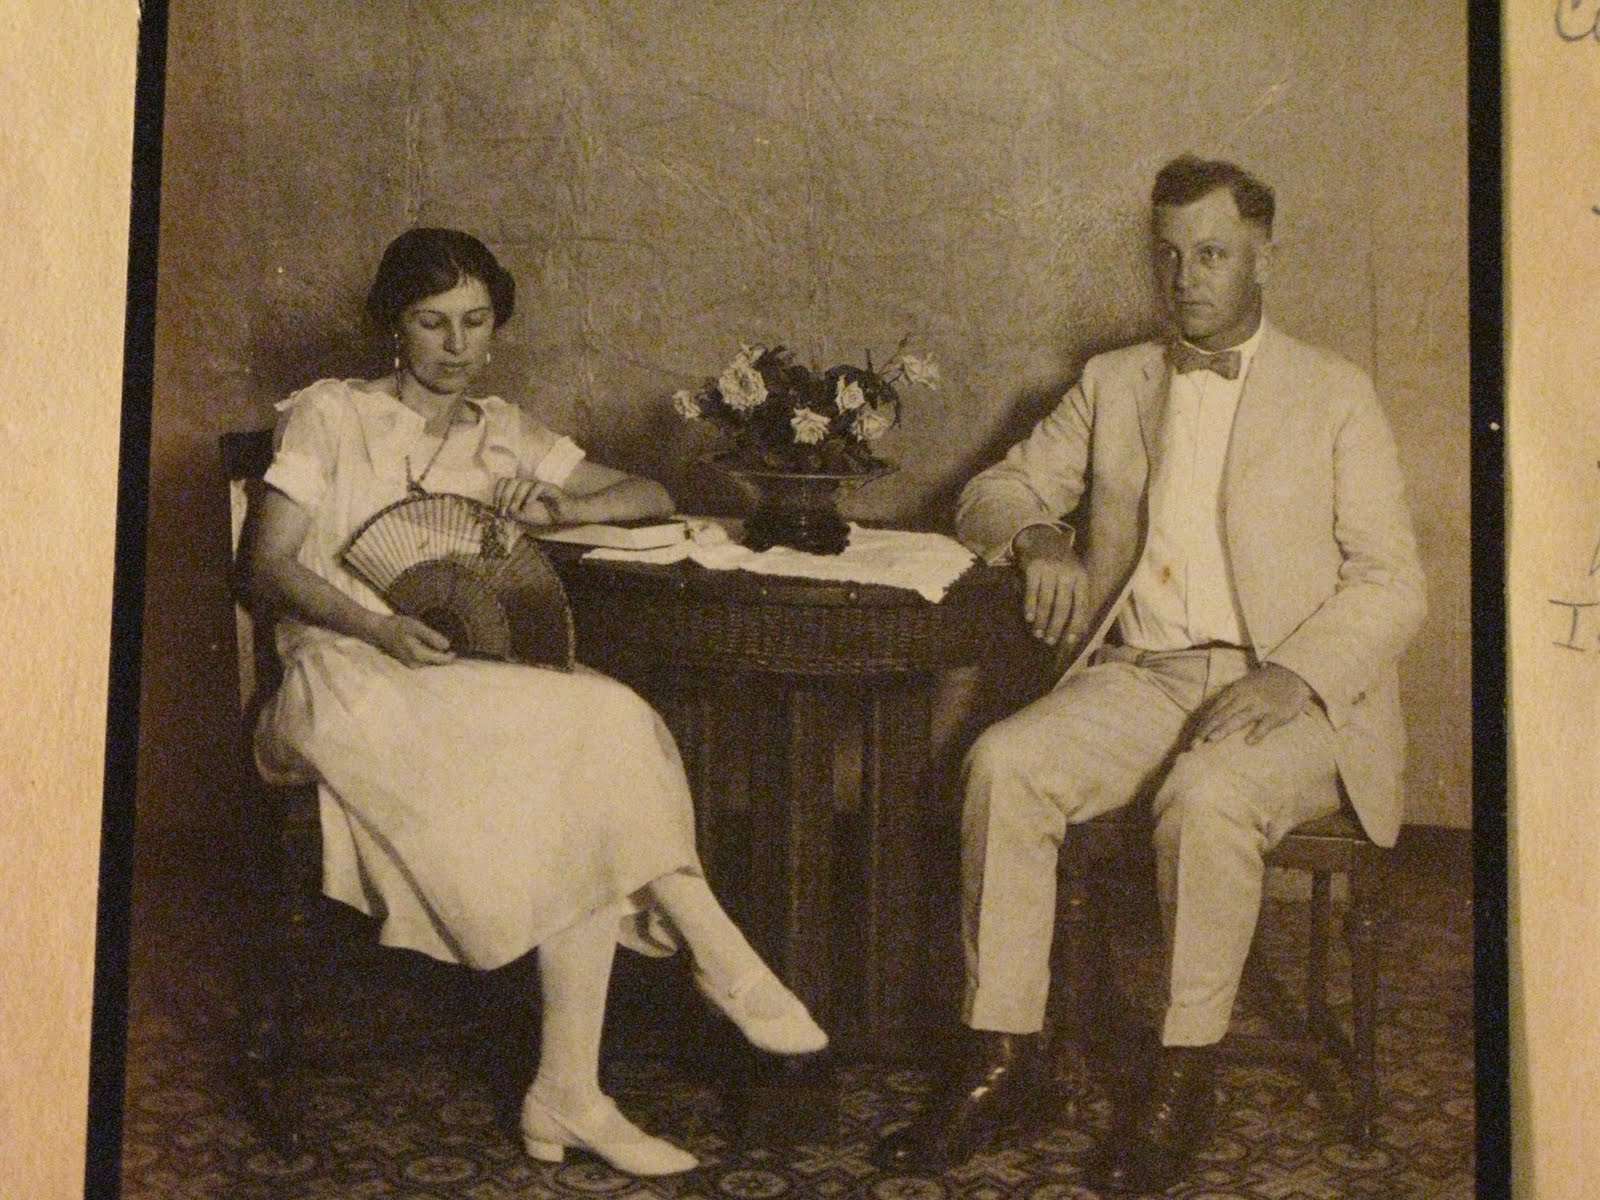 turning our hearts carolie meigs jervis oct sep  a photo of grandma and grandpa that he had in his scrapbook 1922